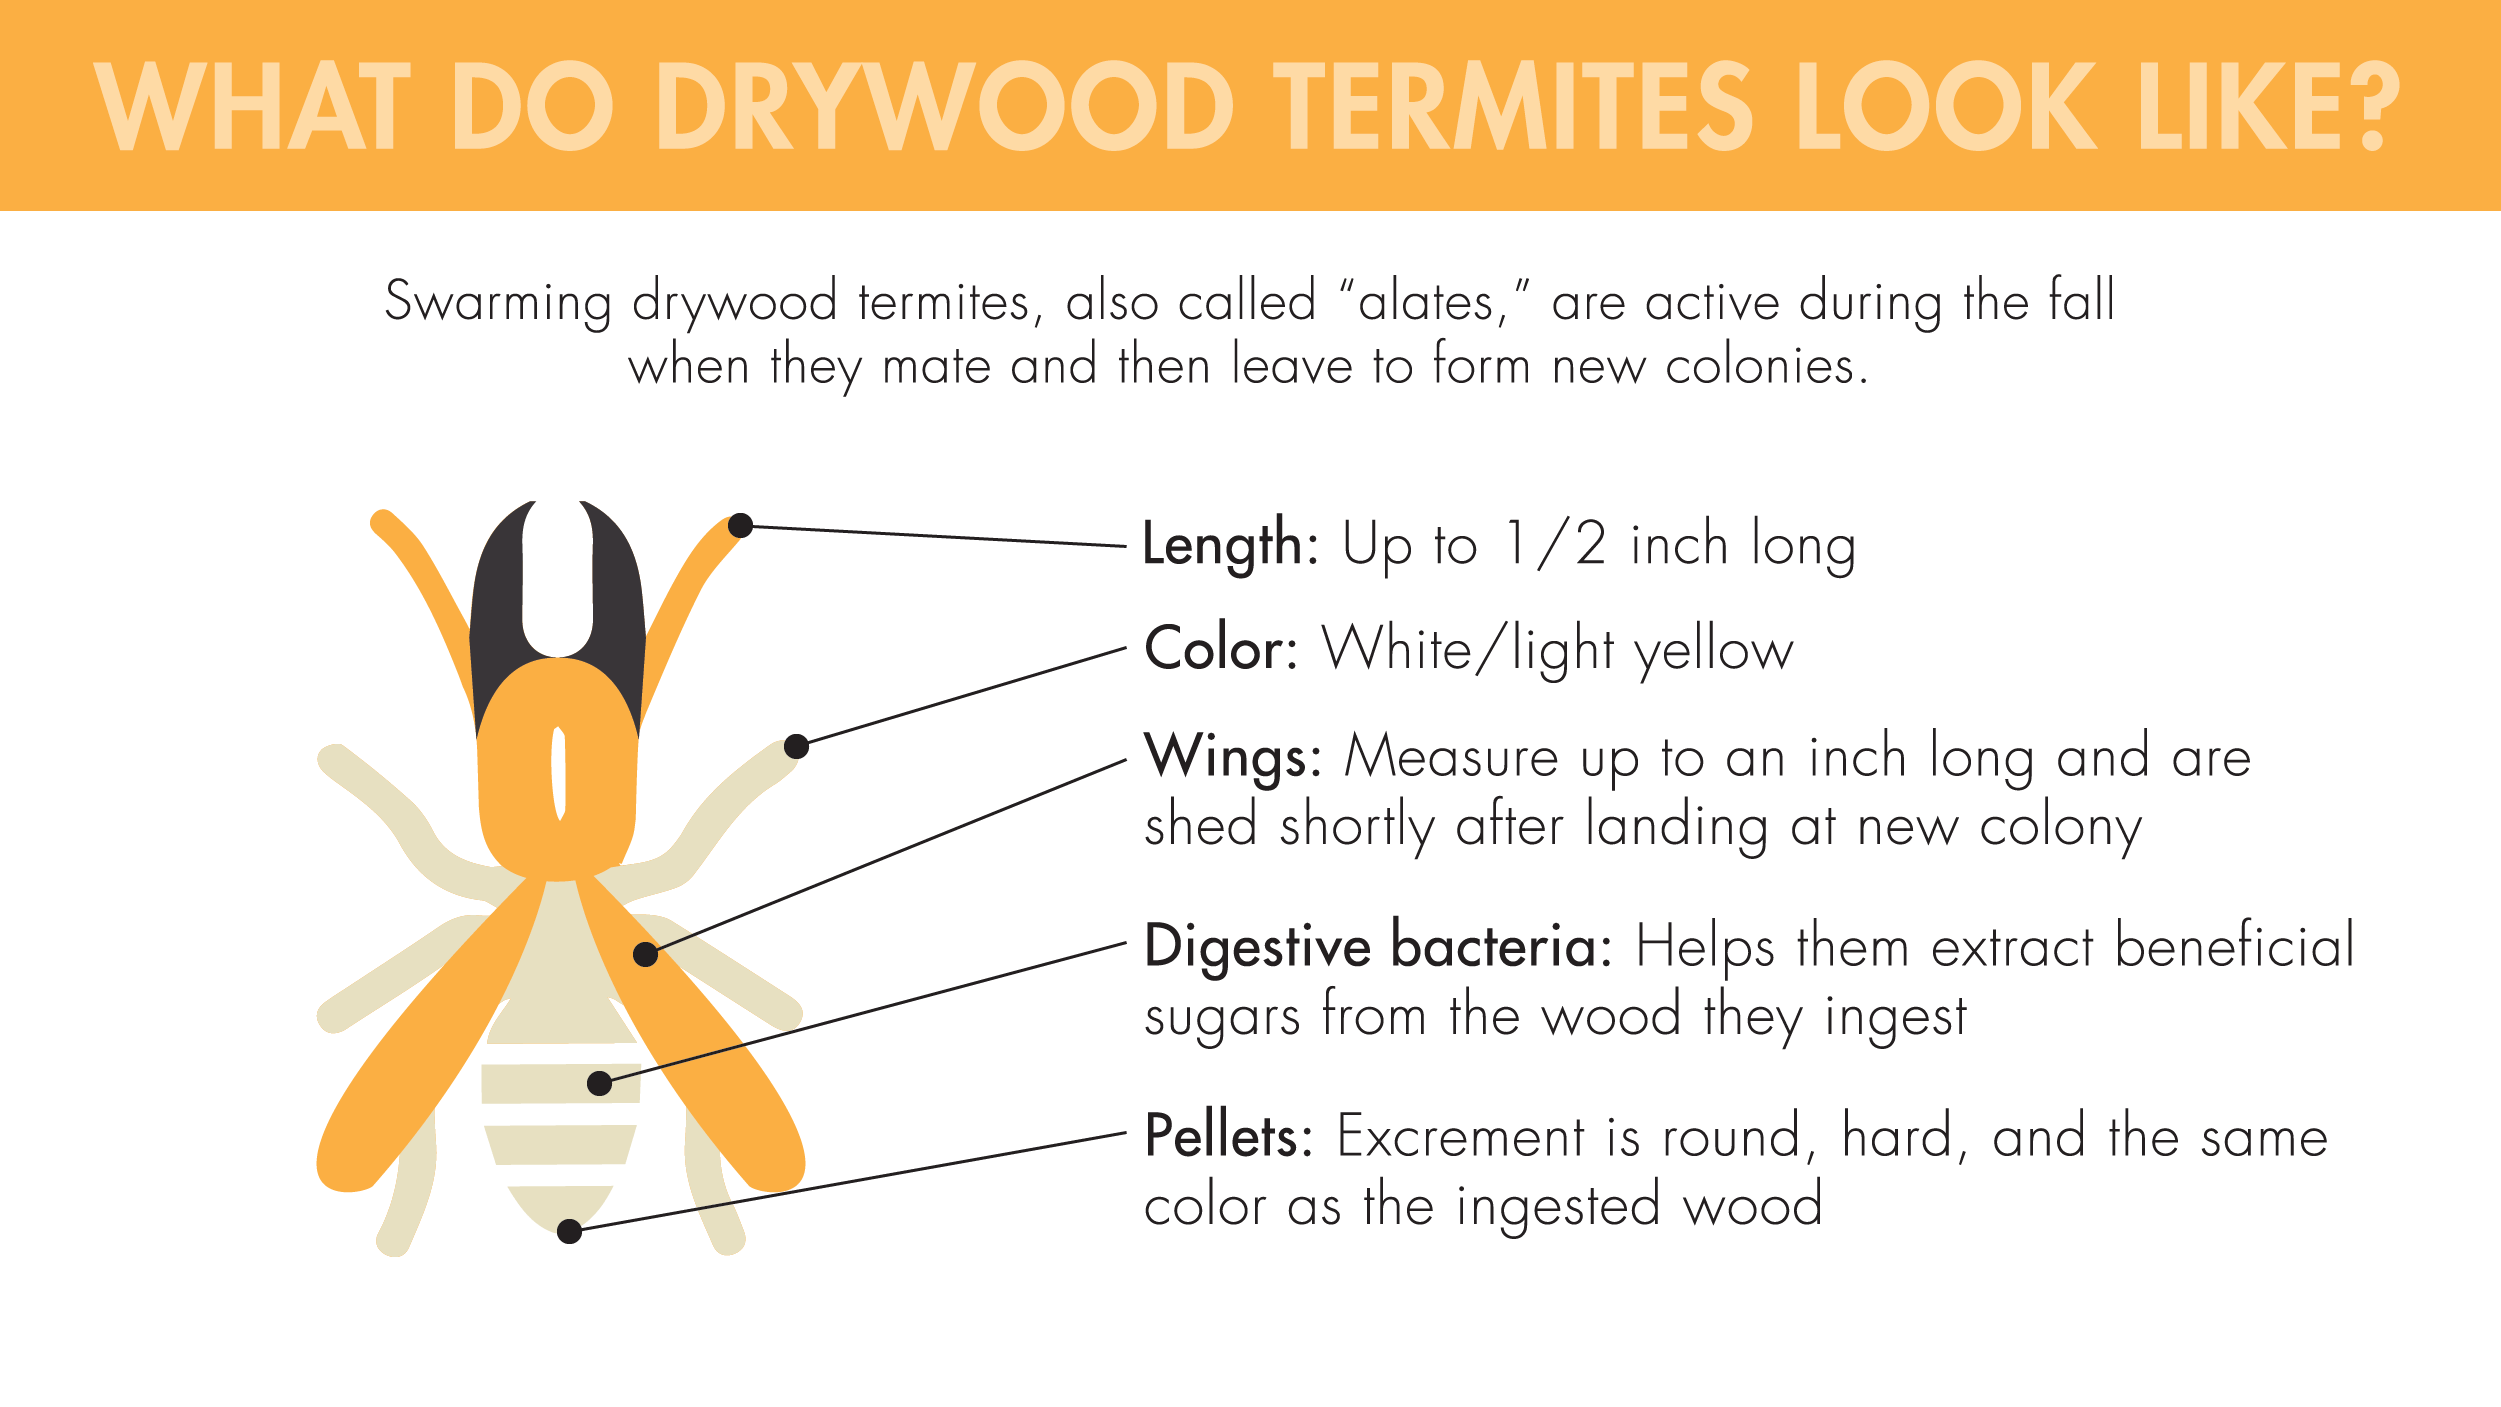 """Swarming drywood termites, also called """"alates,"""" are active during the fall when they mate and then leave to form new colonies. They're up to 1/2-inch long, are a white/light yellow color, have wings that shed shortly after landing at a new colony, extract beneficial sugars from the wood they ingest with digestive bacteria, and excrete round, hard, wood-colored pellets."""